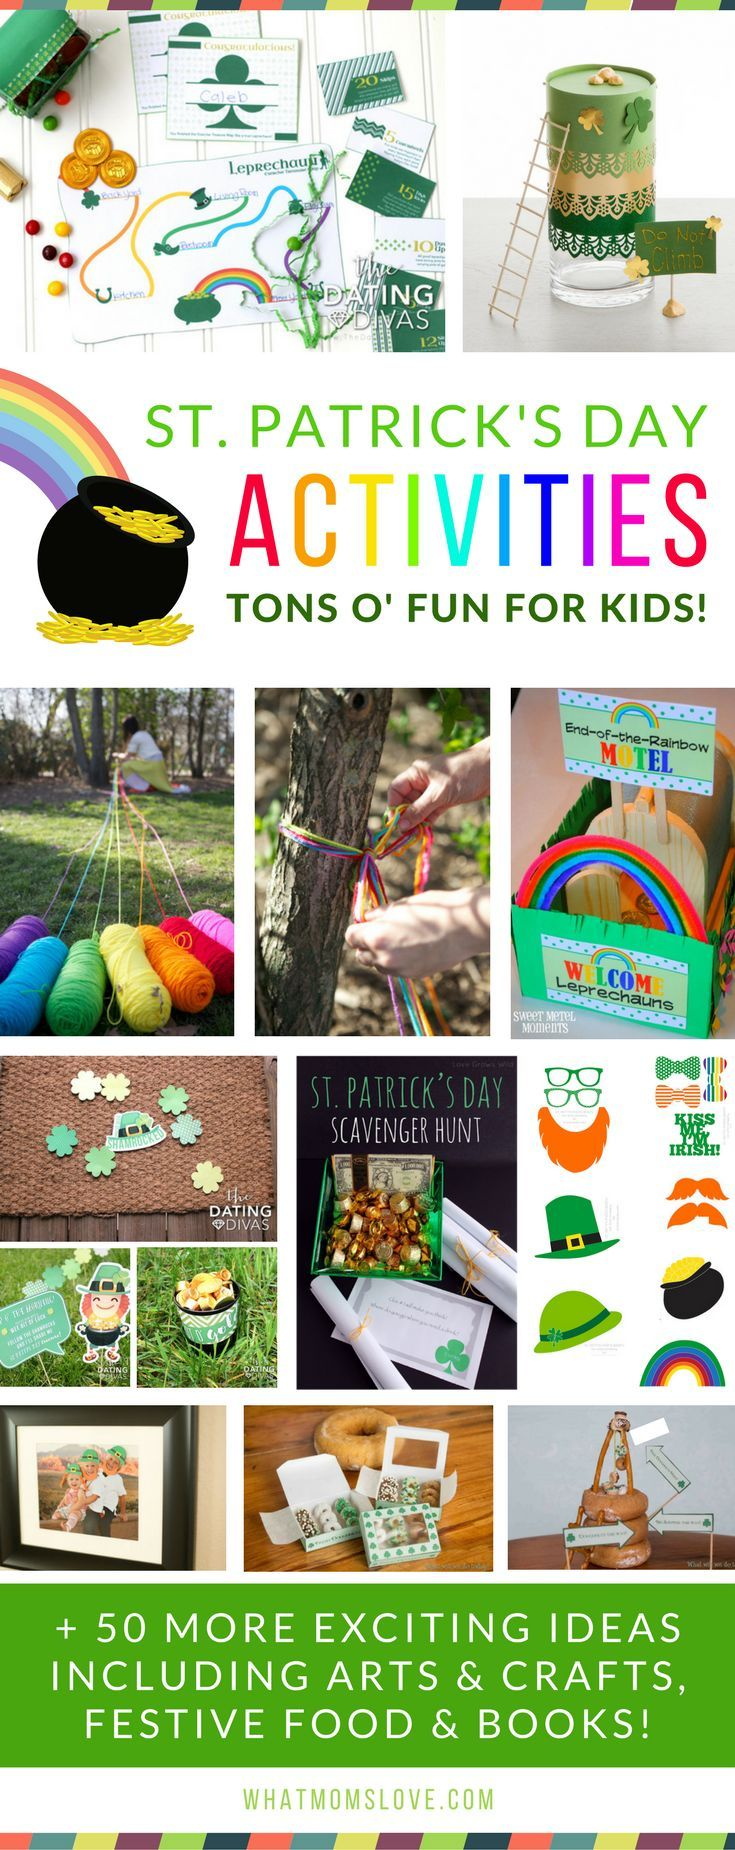 Fun St Patricks Day Activities For Kids   The best Leprechaun Traps, Tricks and Treasure Hunts, plus ideas for crafts, festive food and snacks, and St Paddy's books. For the full list visit www.whatmomslove.com